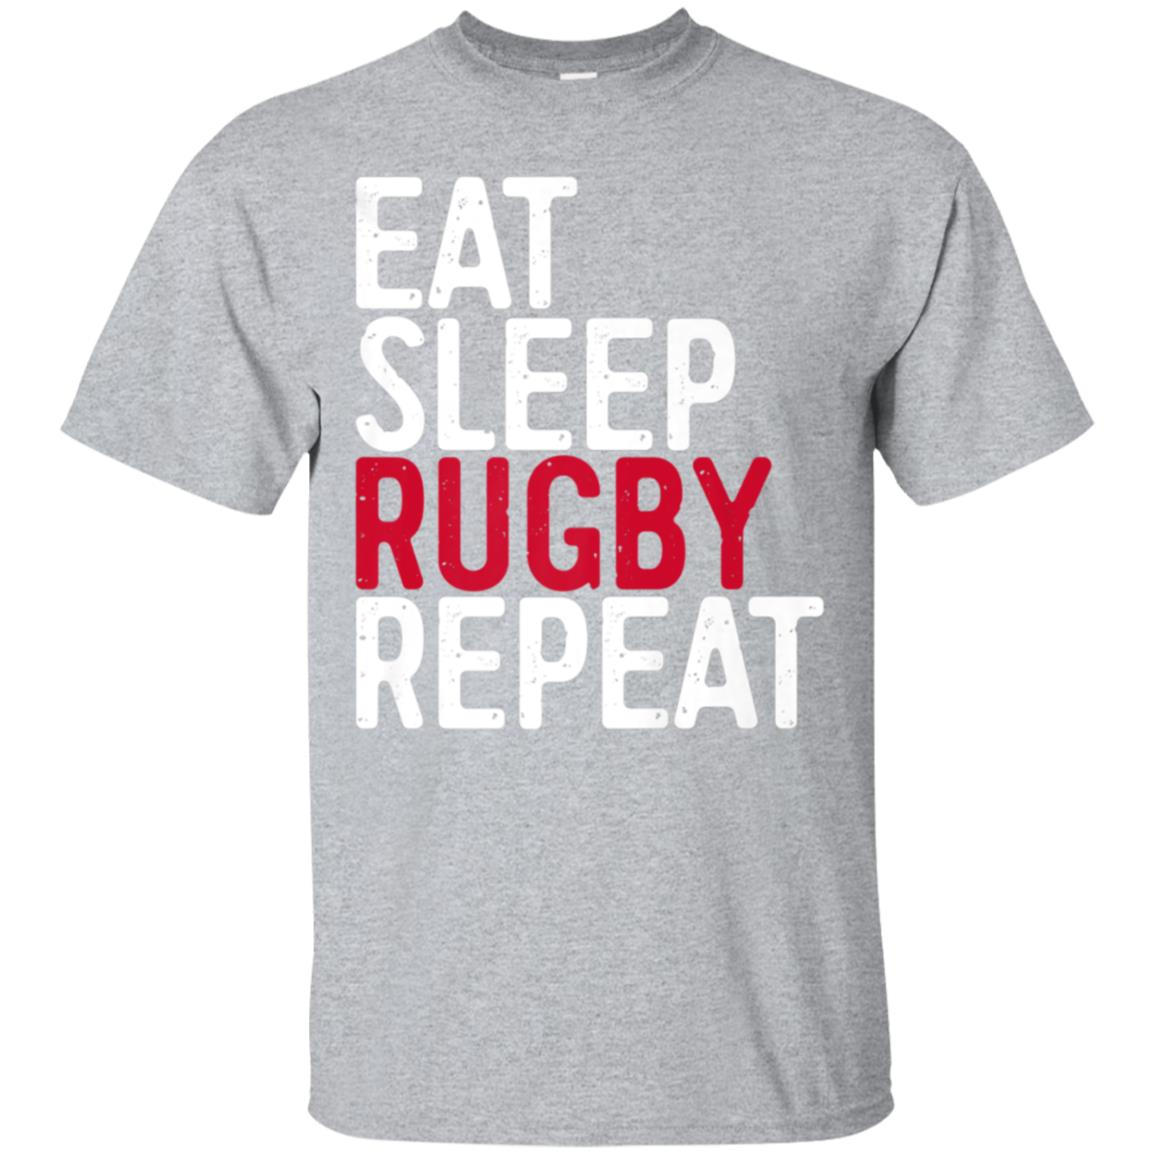 Eat Sleep Rugby Repeat T-Shirt Sport Game Gift 99promocode